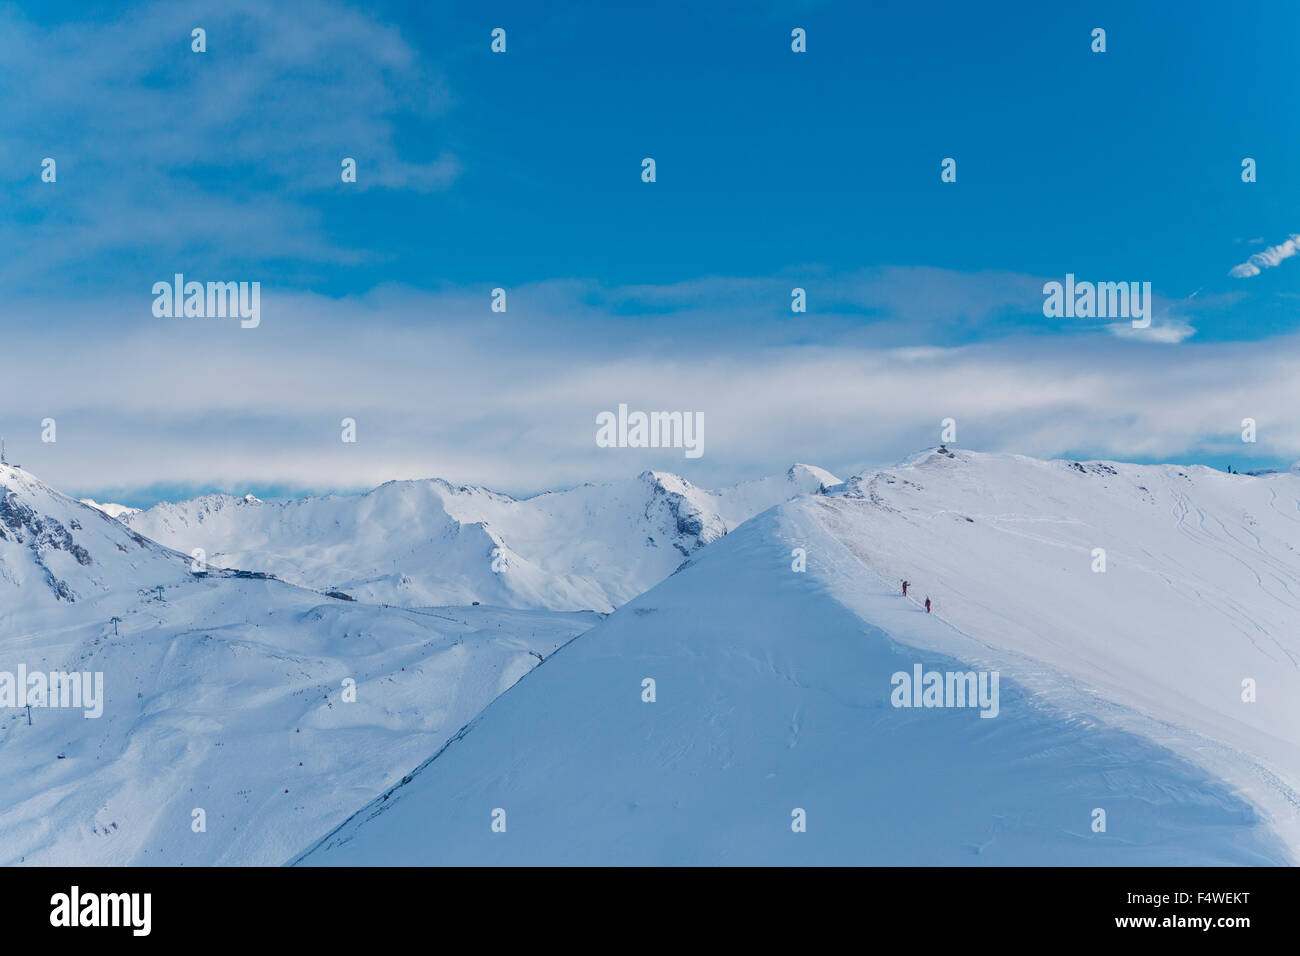 France, Rhône-Alpes, Savoie, Val D'Isere, Scenic view of snowcapped mountains Stock Photo